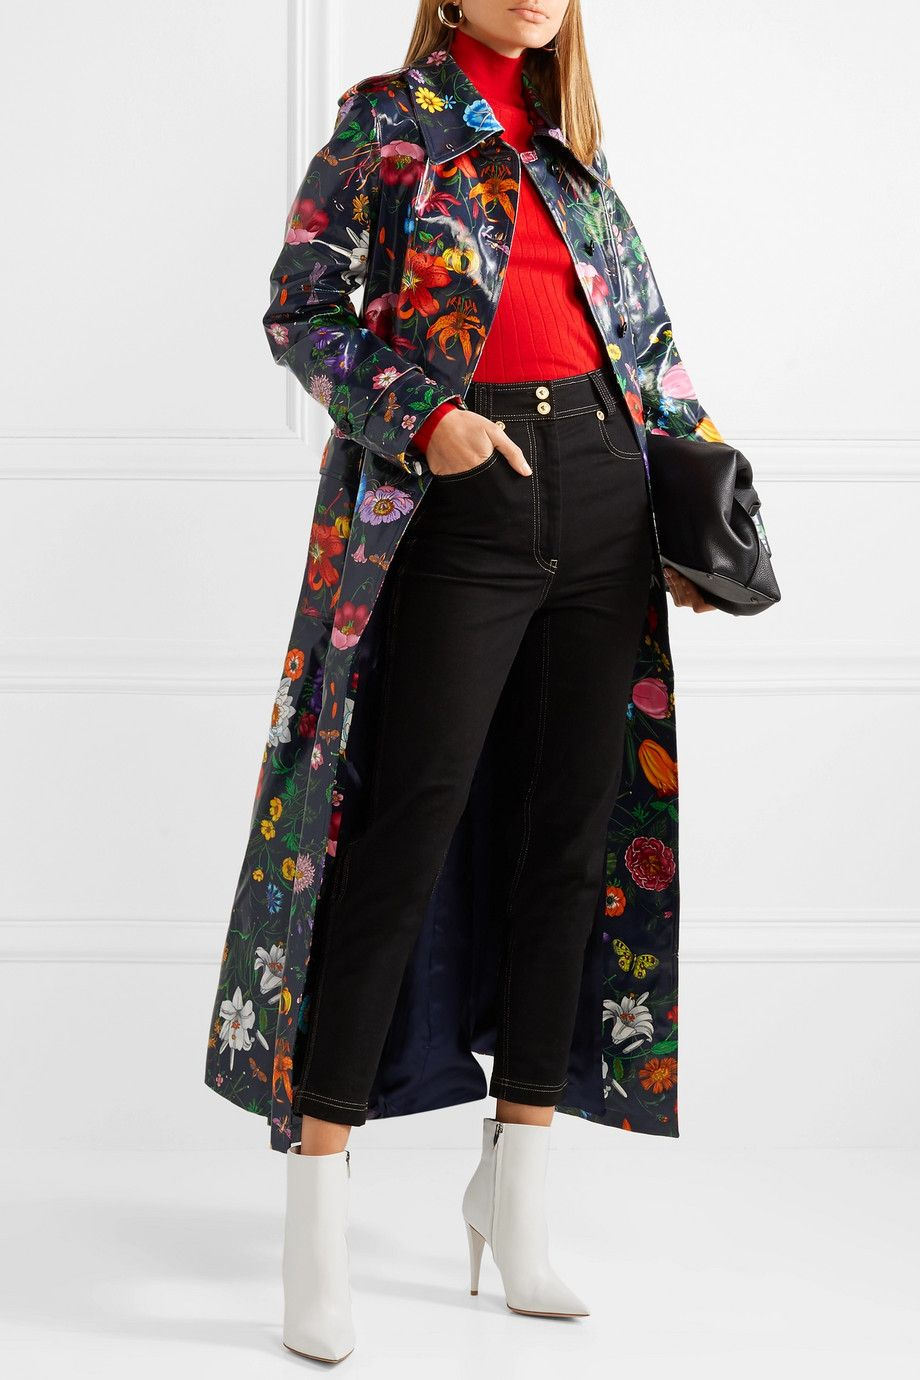 Gucci Oversized Floral Print Coated Cotton Drill Trench Coat Net A Porter Com Print Coat Coat Trench Coat